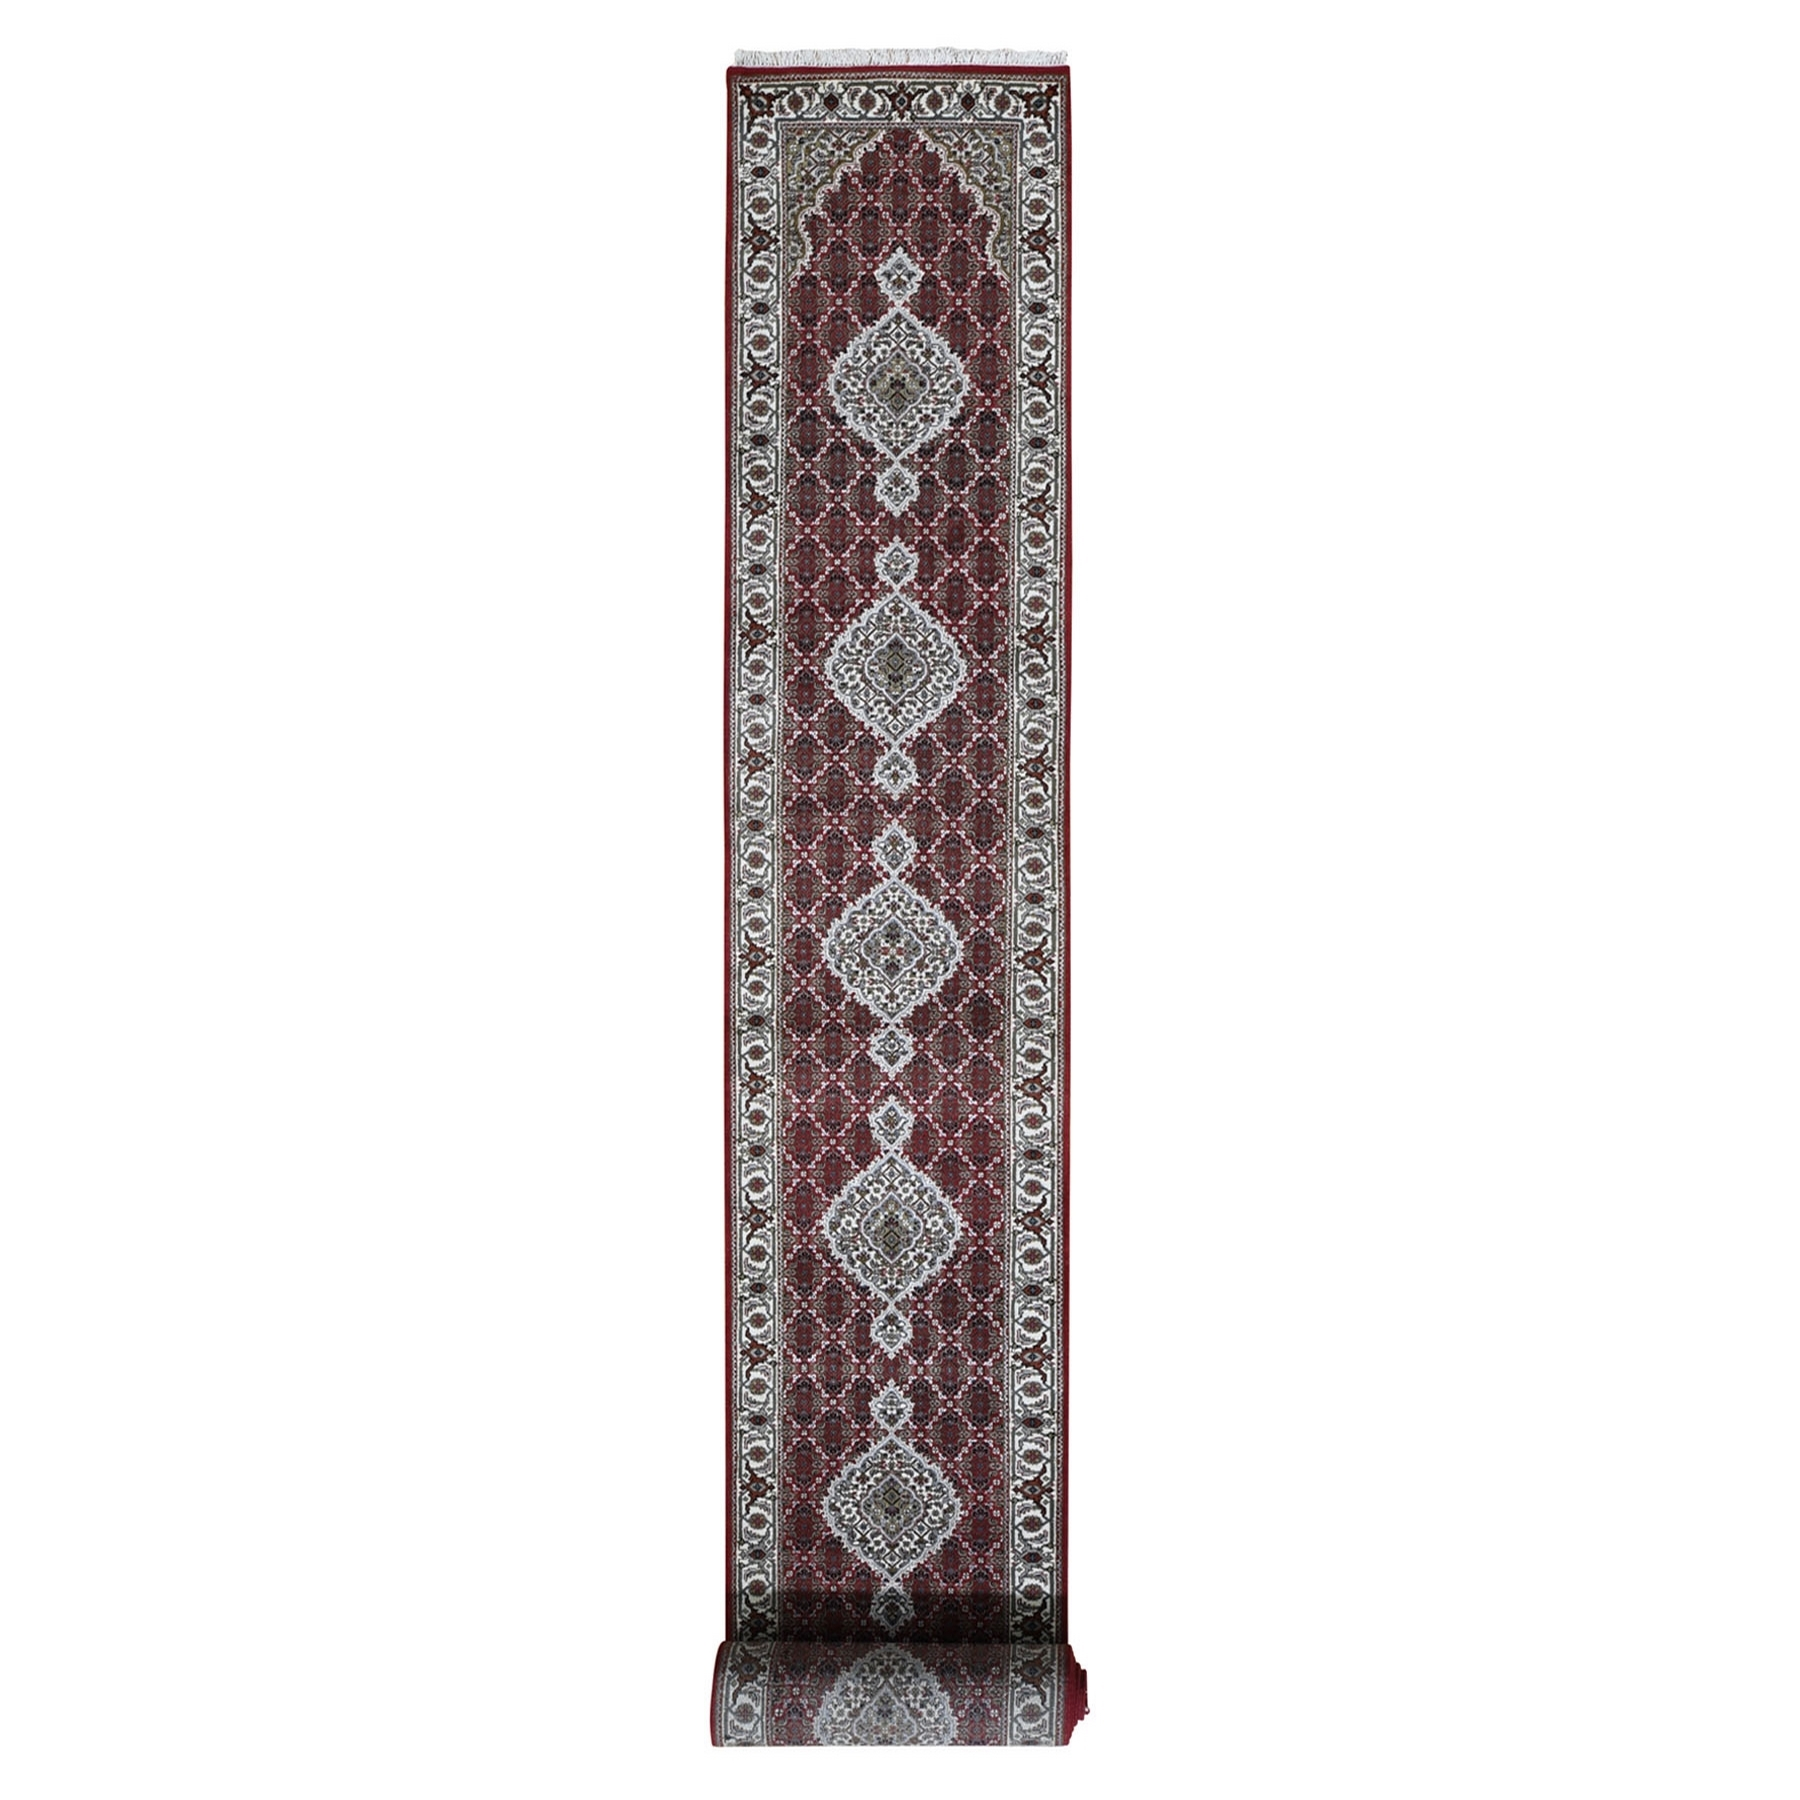 Pirniakan Collection Hand Knotted Red Rug No: 199088